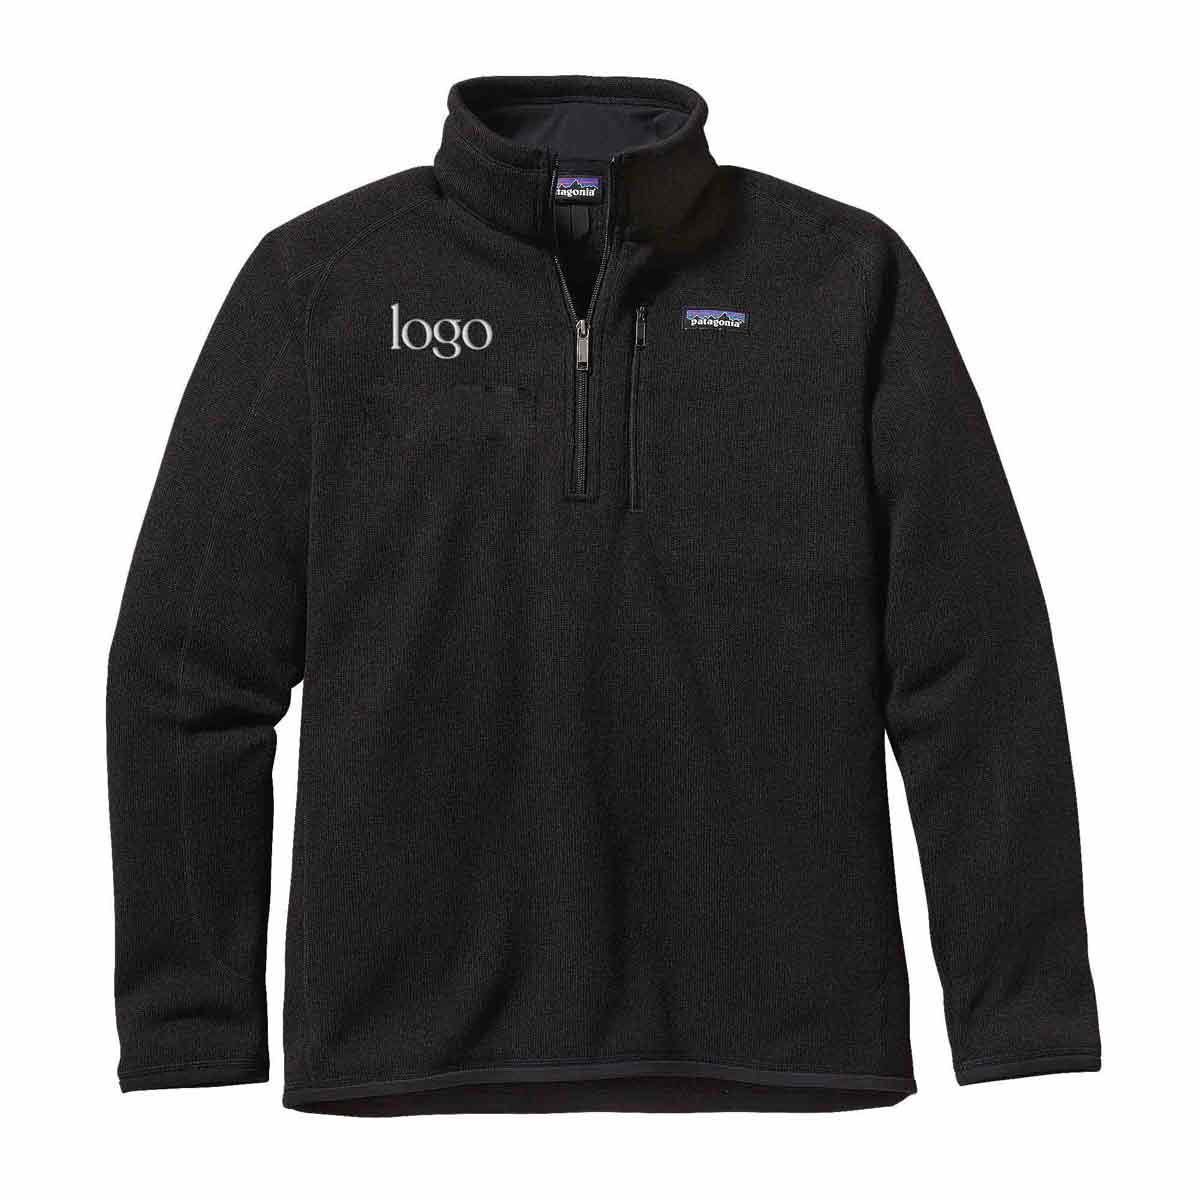 243690 better sweater 1 4 zip embroidered up to 4k stitches